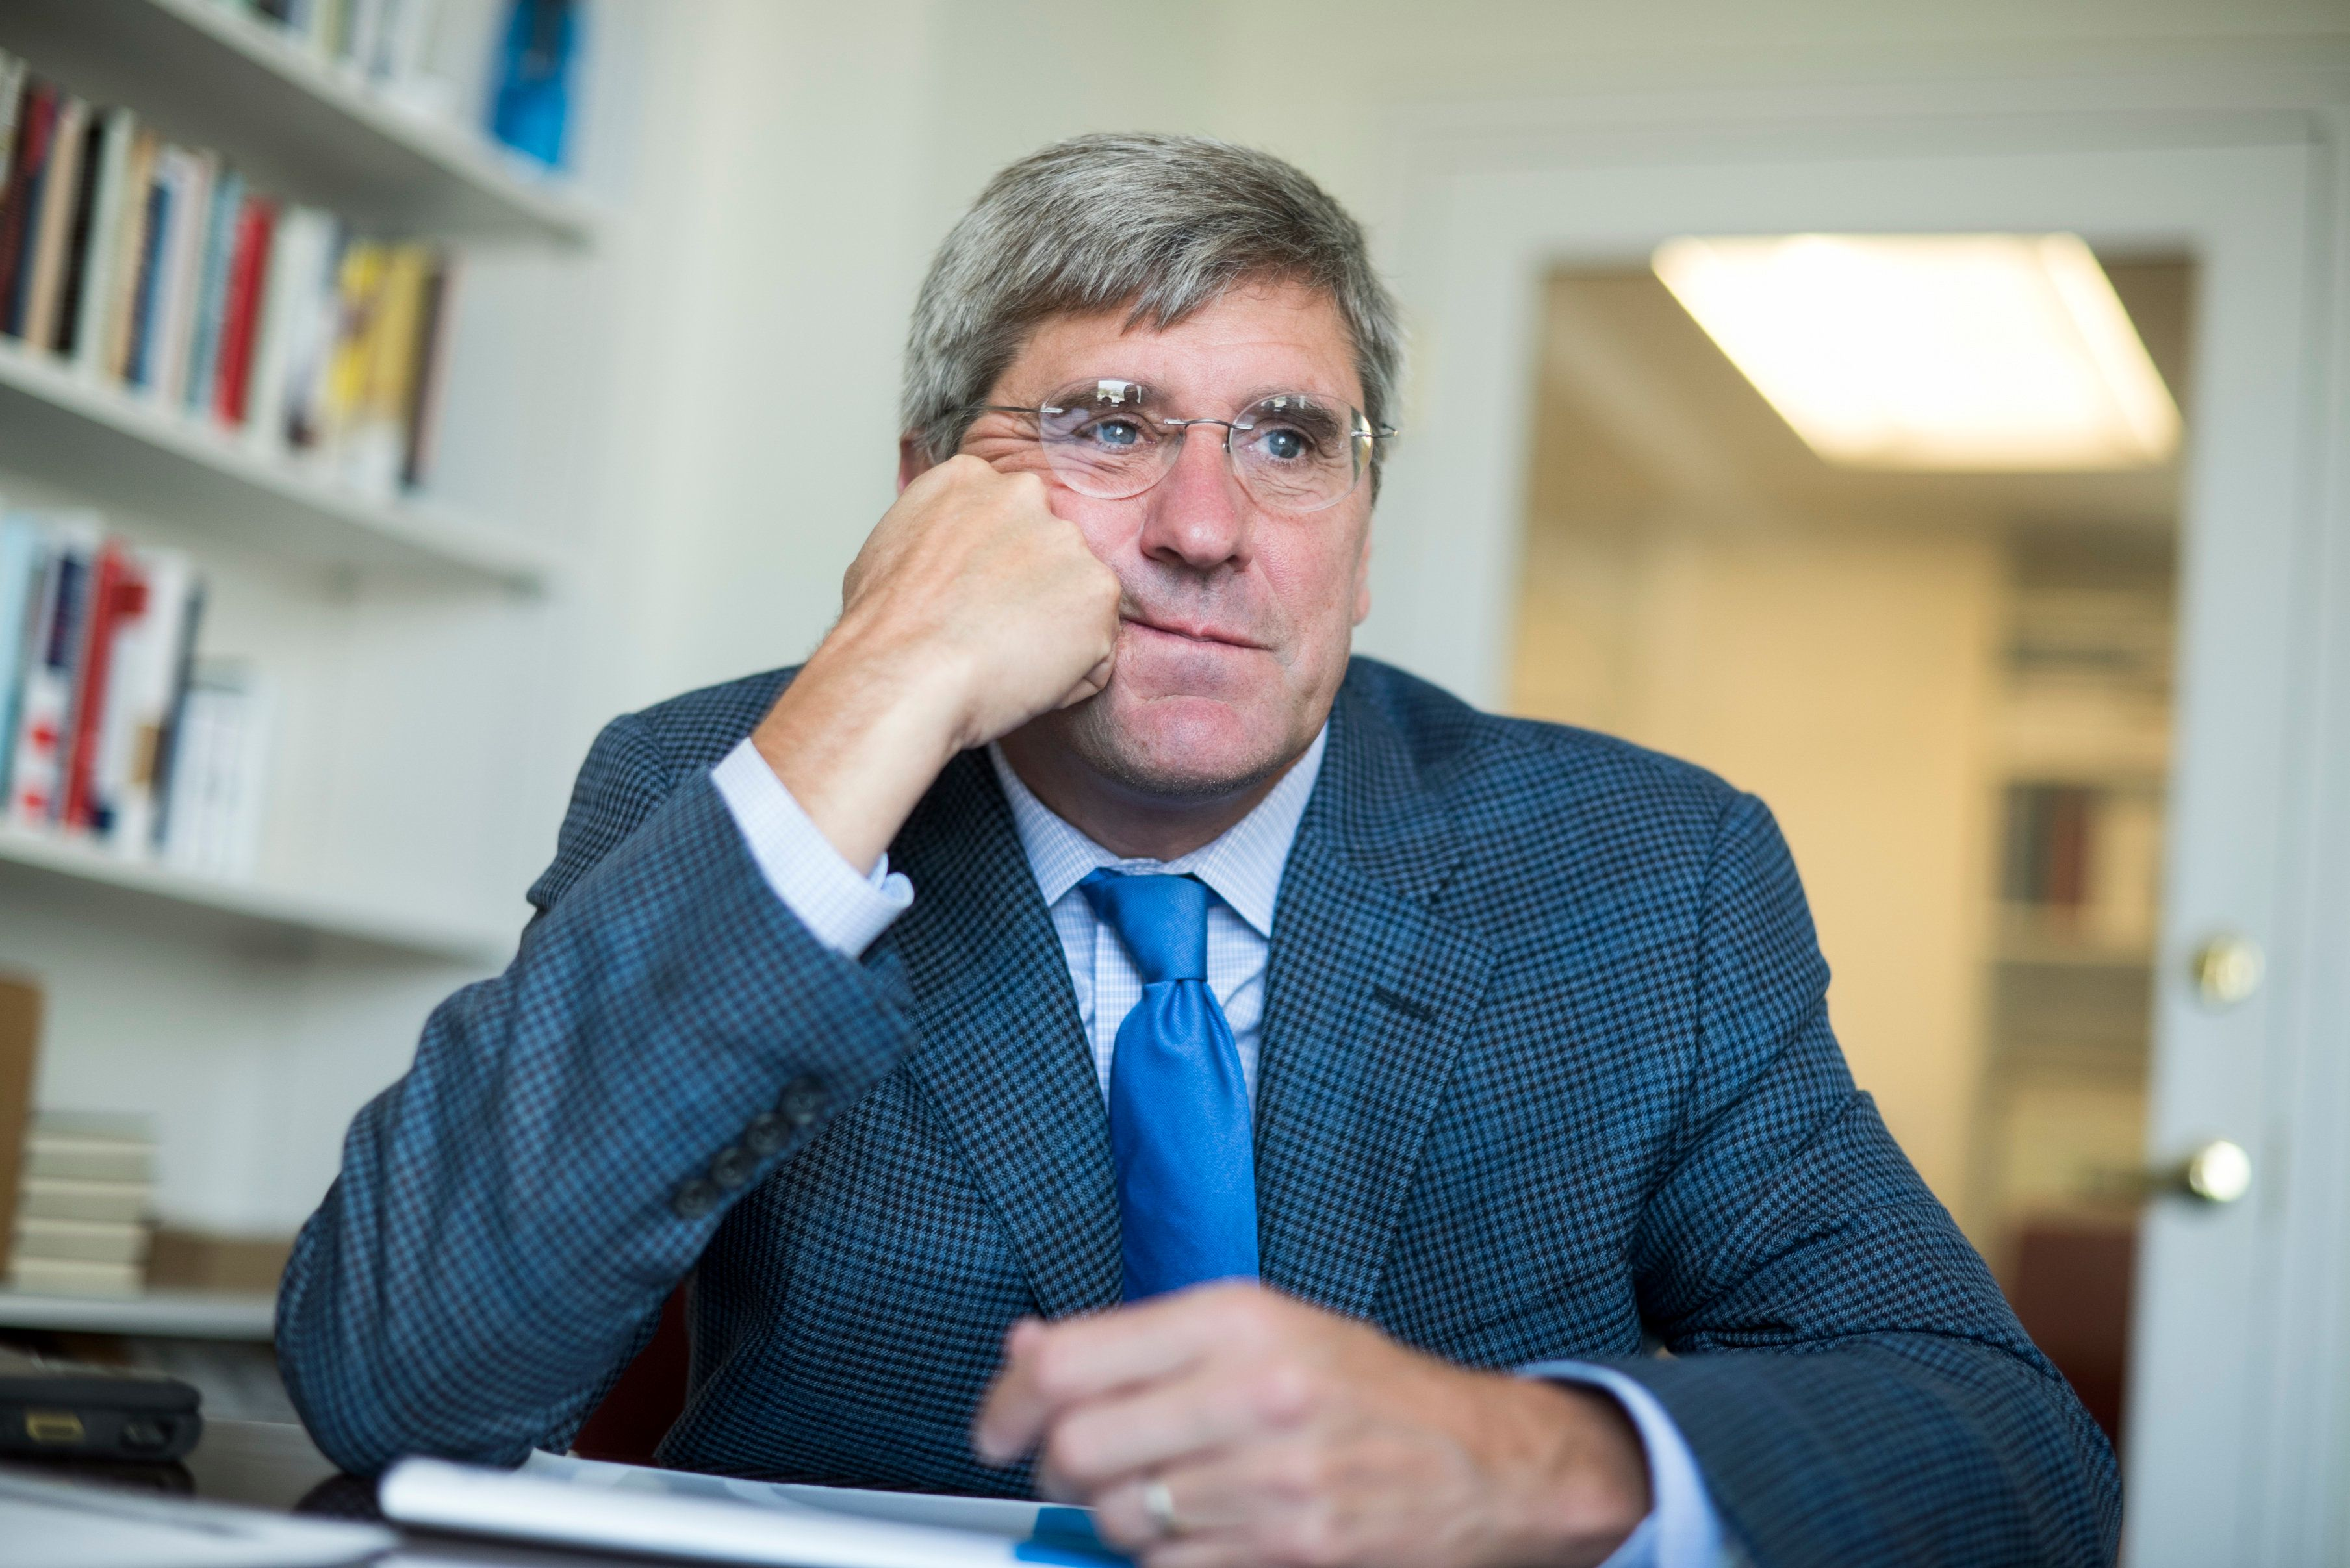 Stephen Moore of The Heritage Foundation in his Washington office in August 2016.